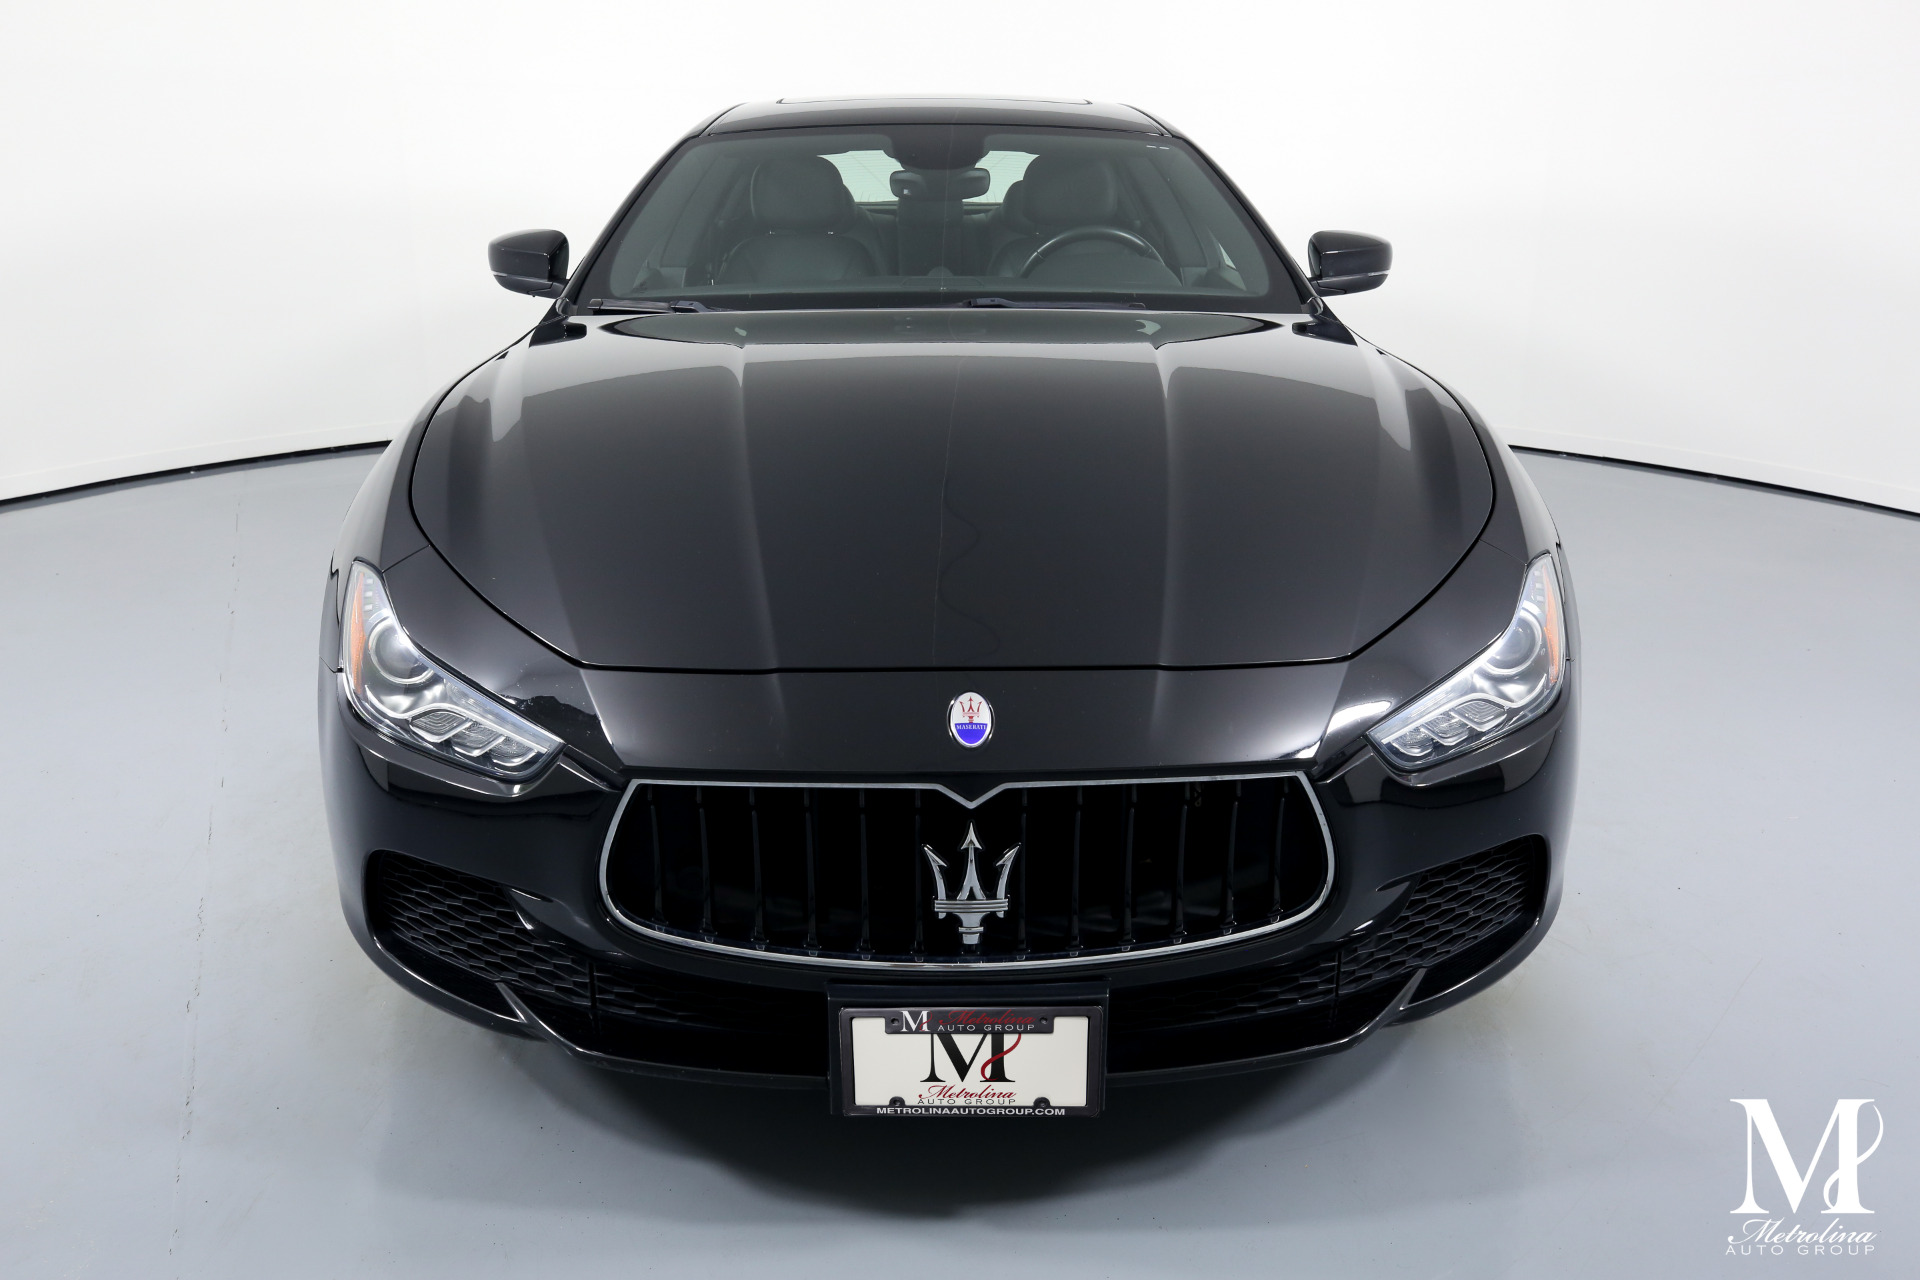 Used 2017 Maserati Ghibli Base 4dr Sedan for sale Sold at Metrolina Auto Group in Charlotte NC 28217 - 3